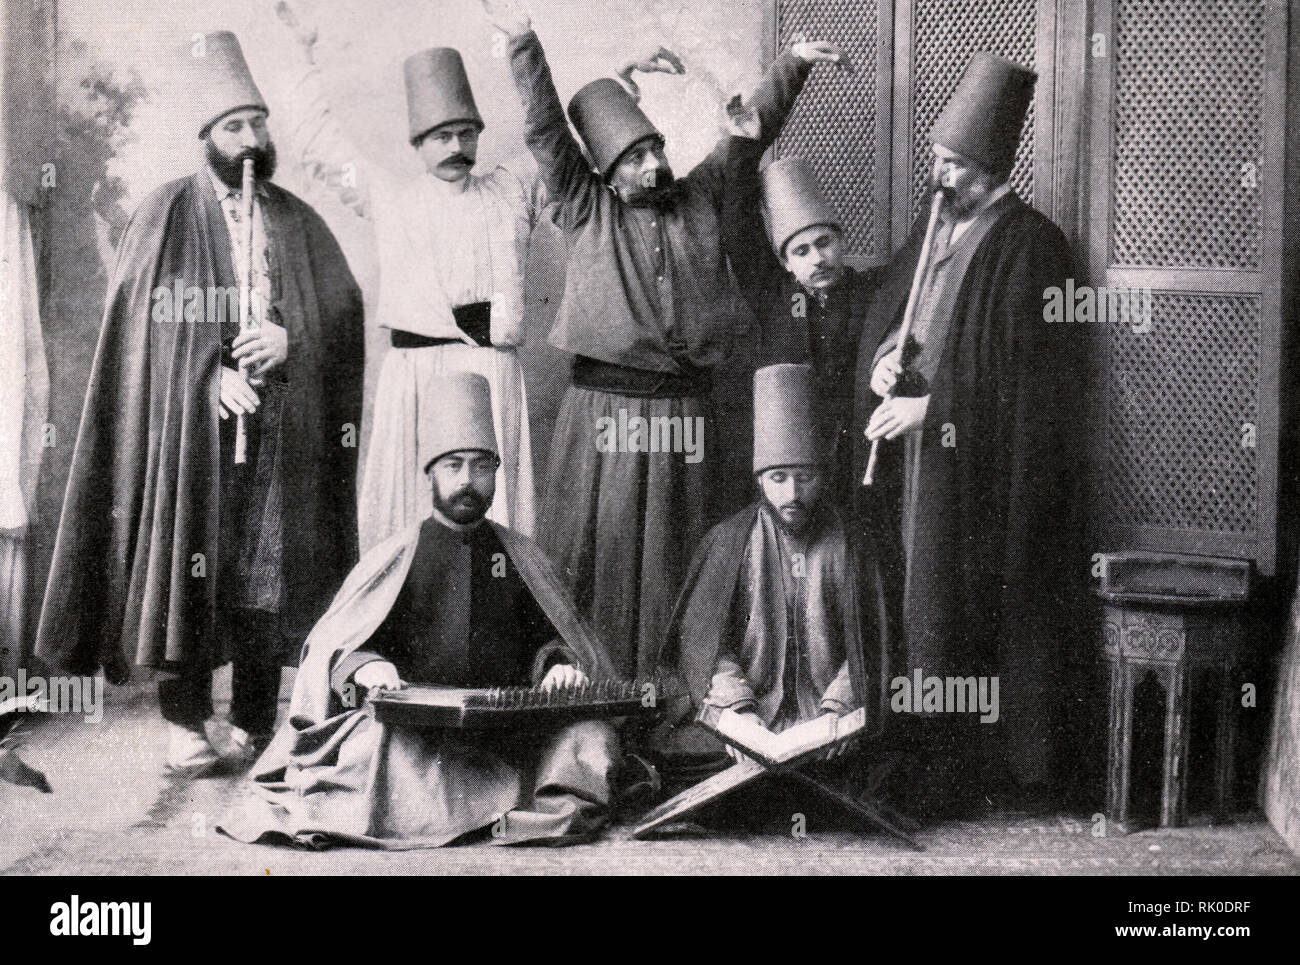 Group of dervishes. Photo. Beginning of the 20th century. - Stock Image